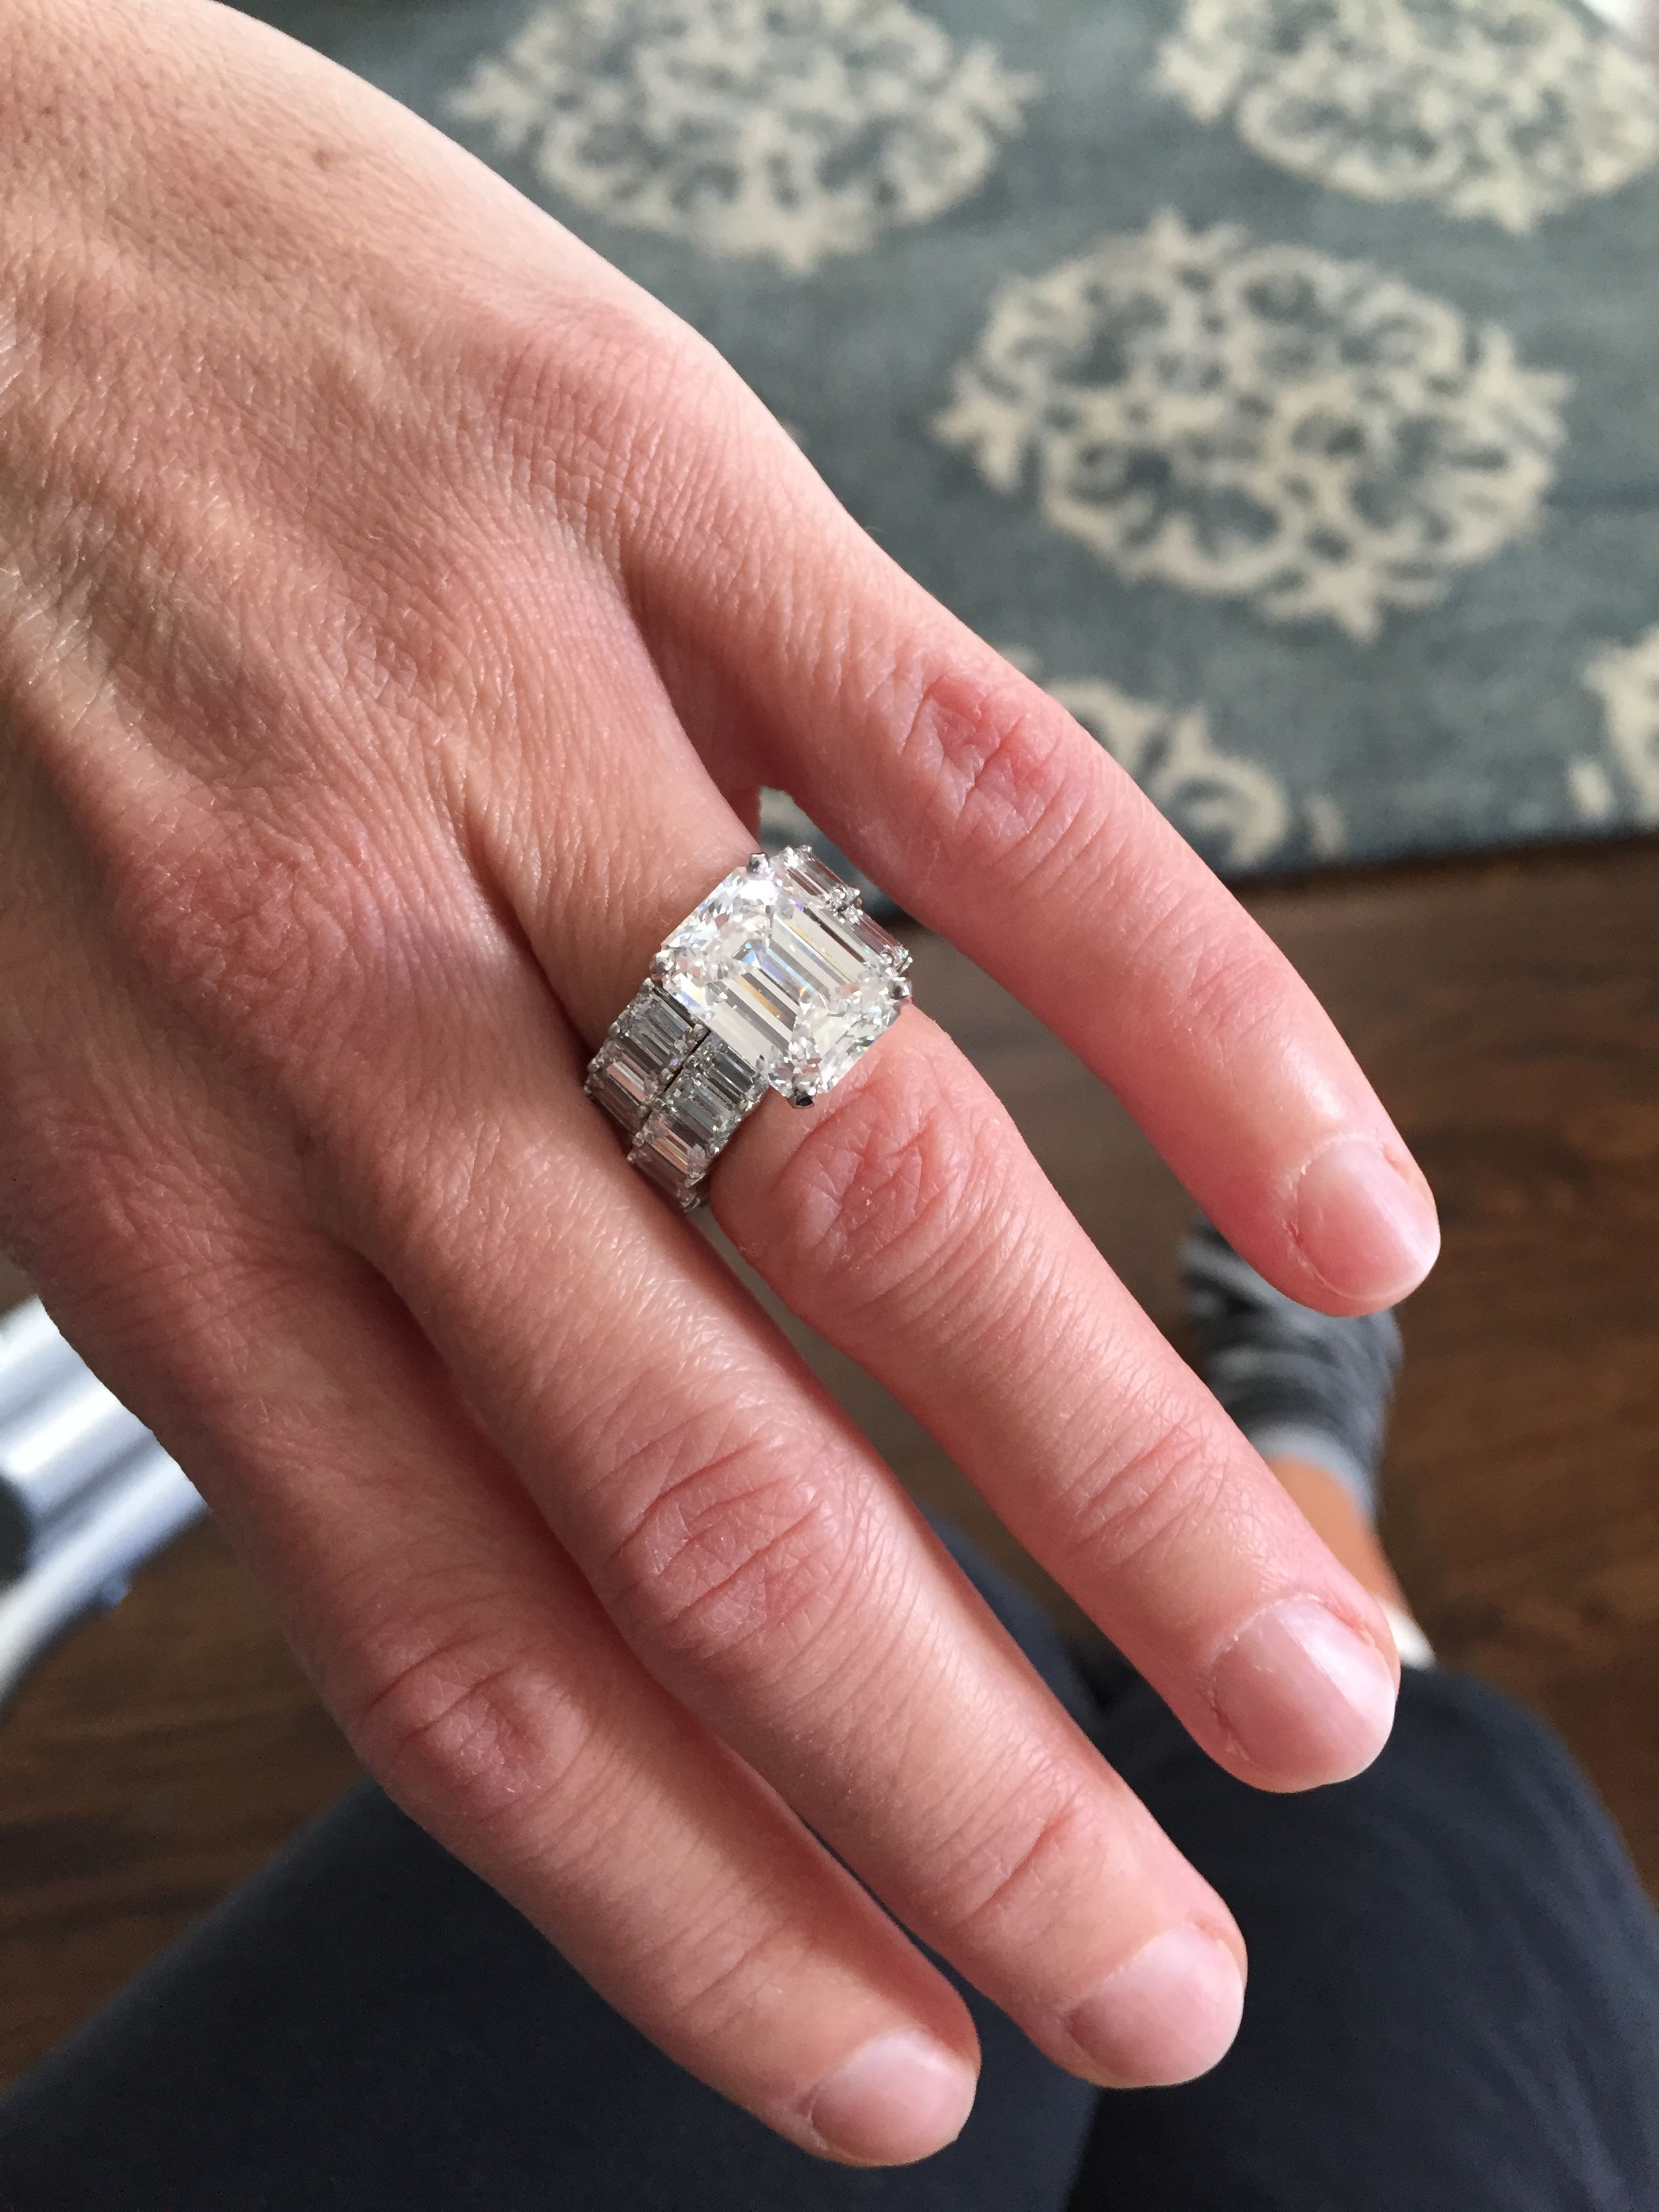 Pin by Anna Bell Dent on Wedding | Pinterest | Jewlery, Ring and Diamond